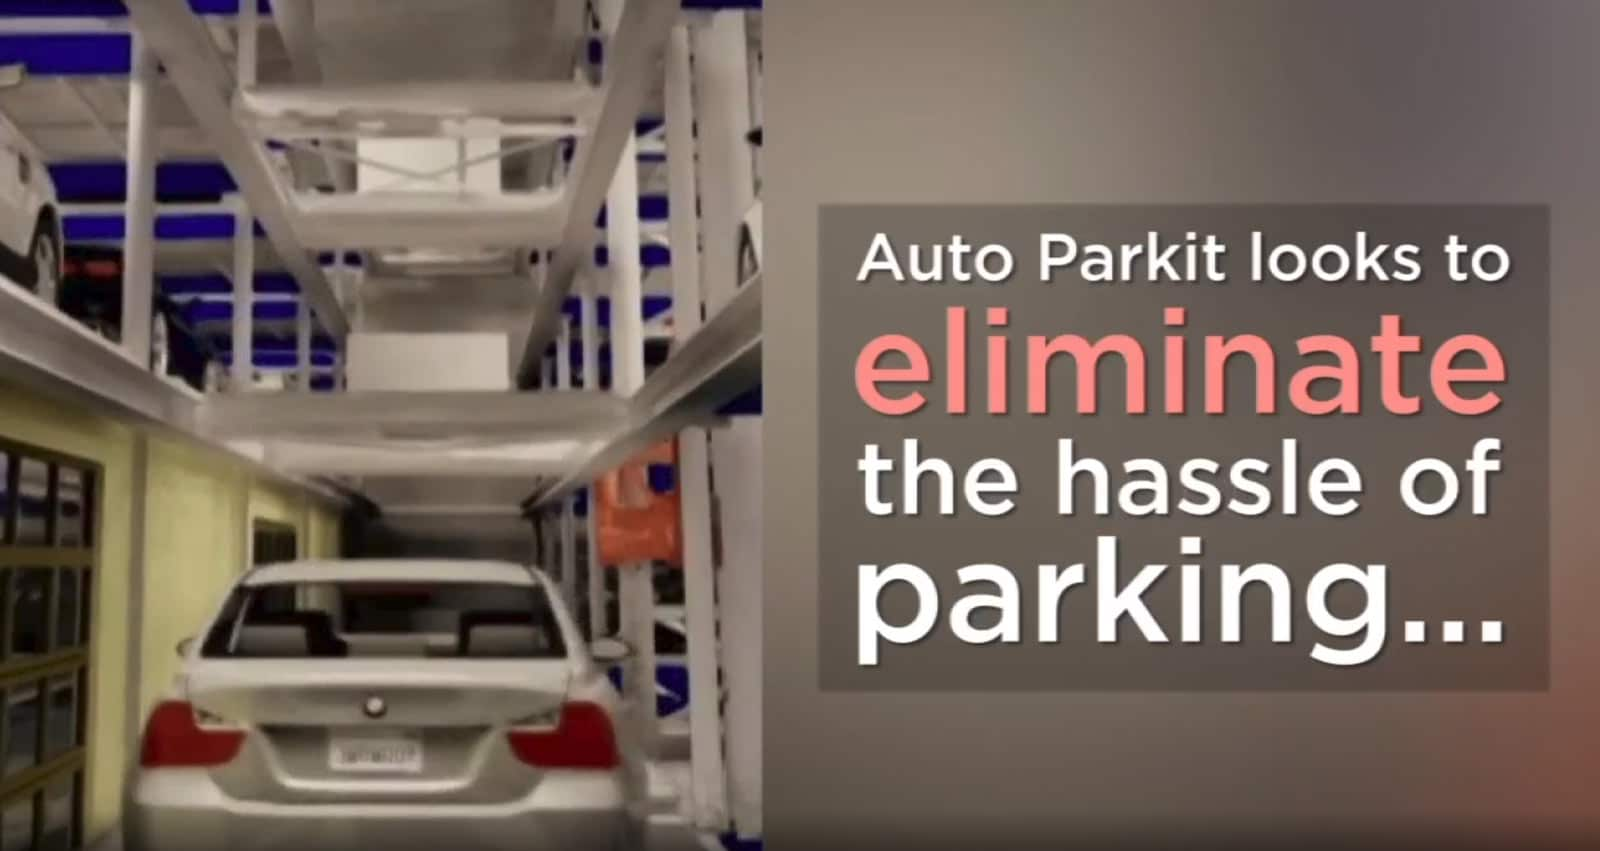 ABC7 – Automated garage company aims to eliminate parking hassles